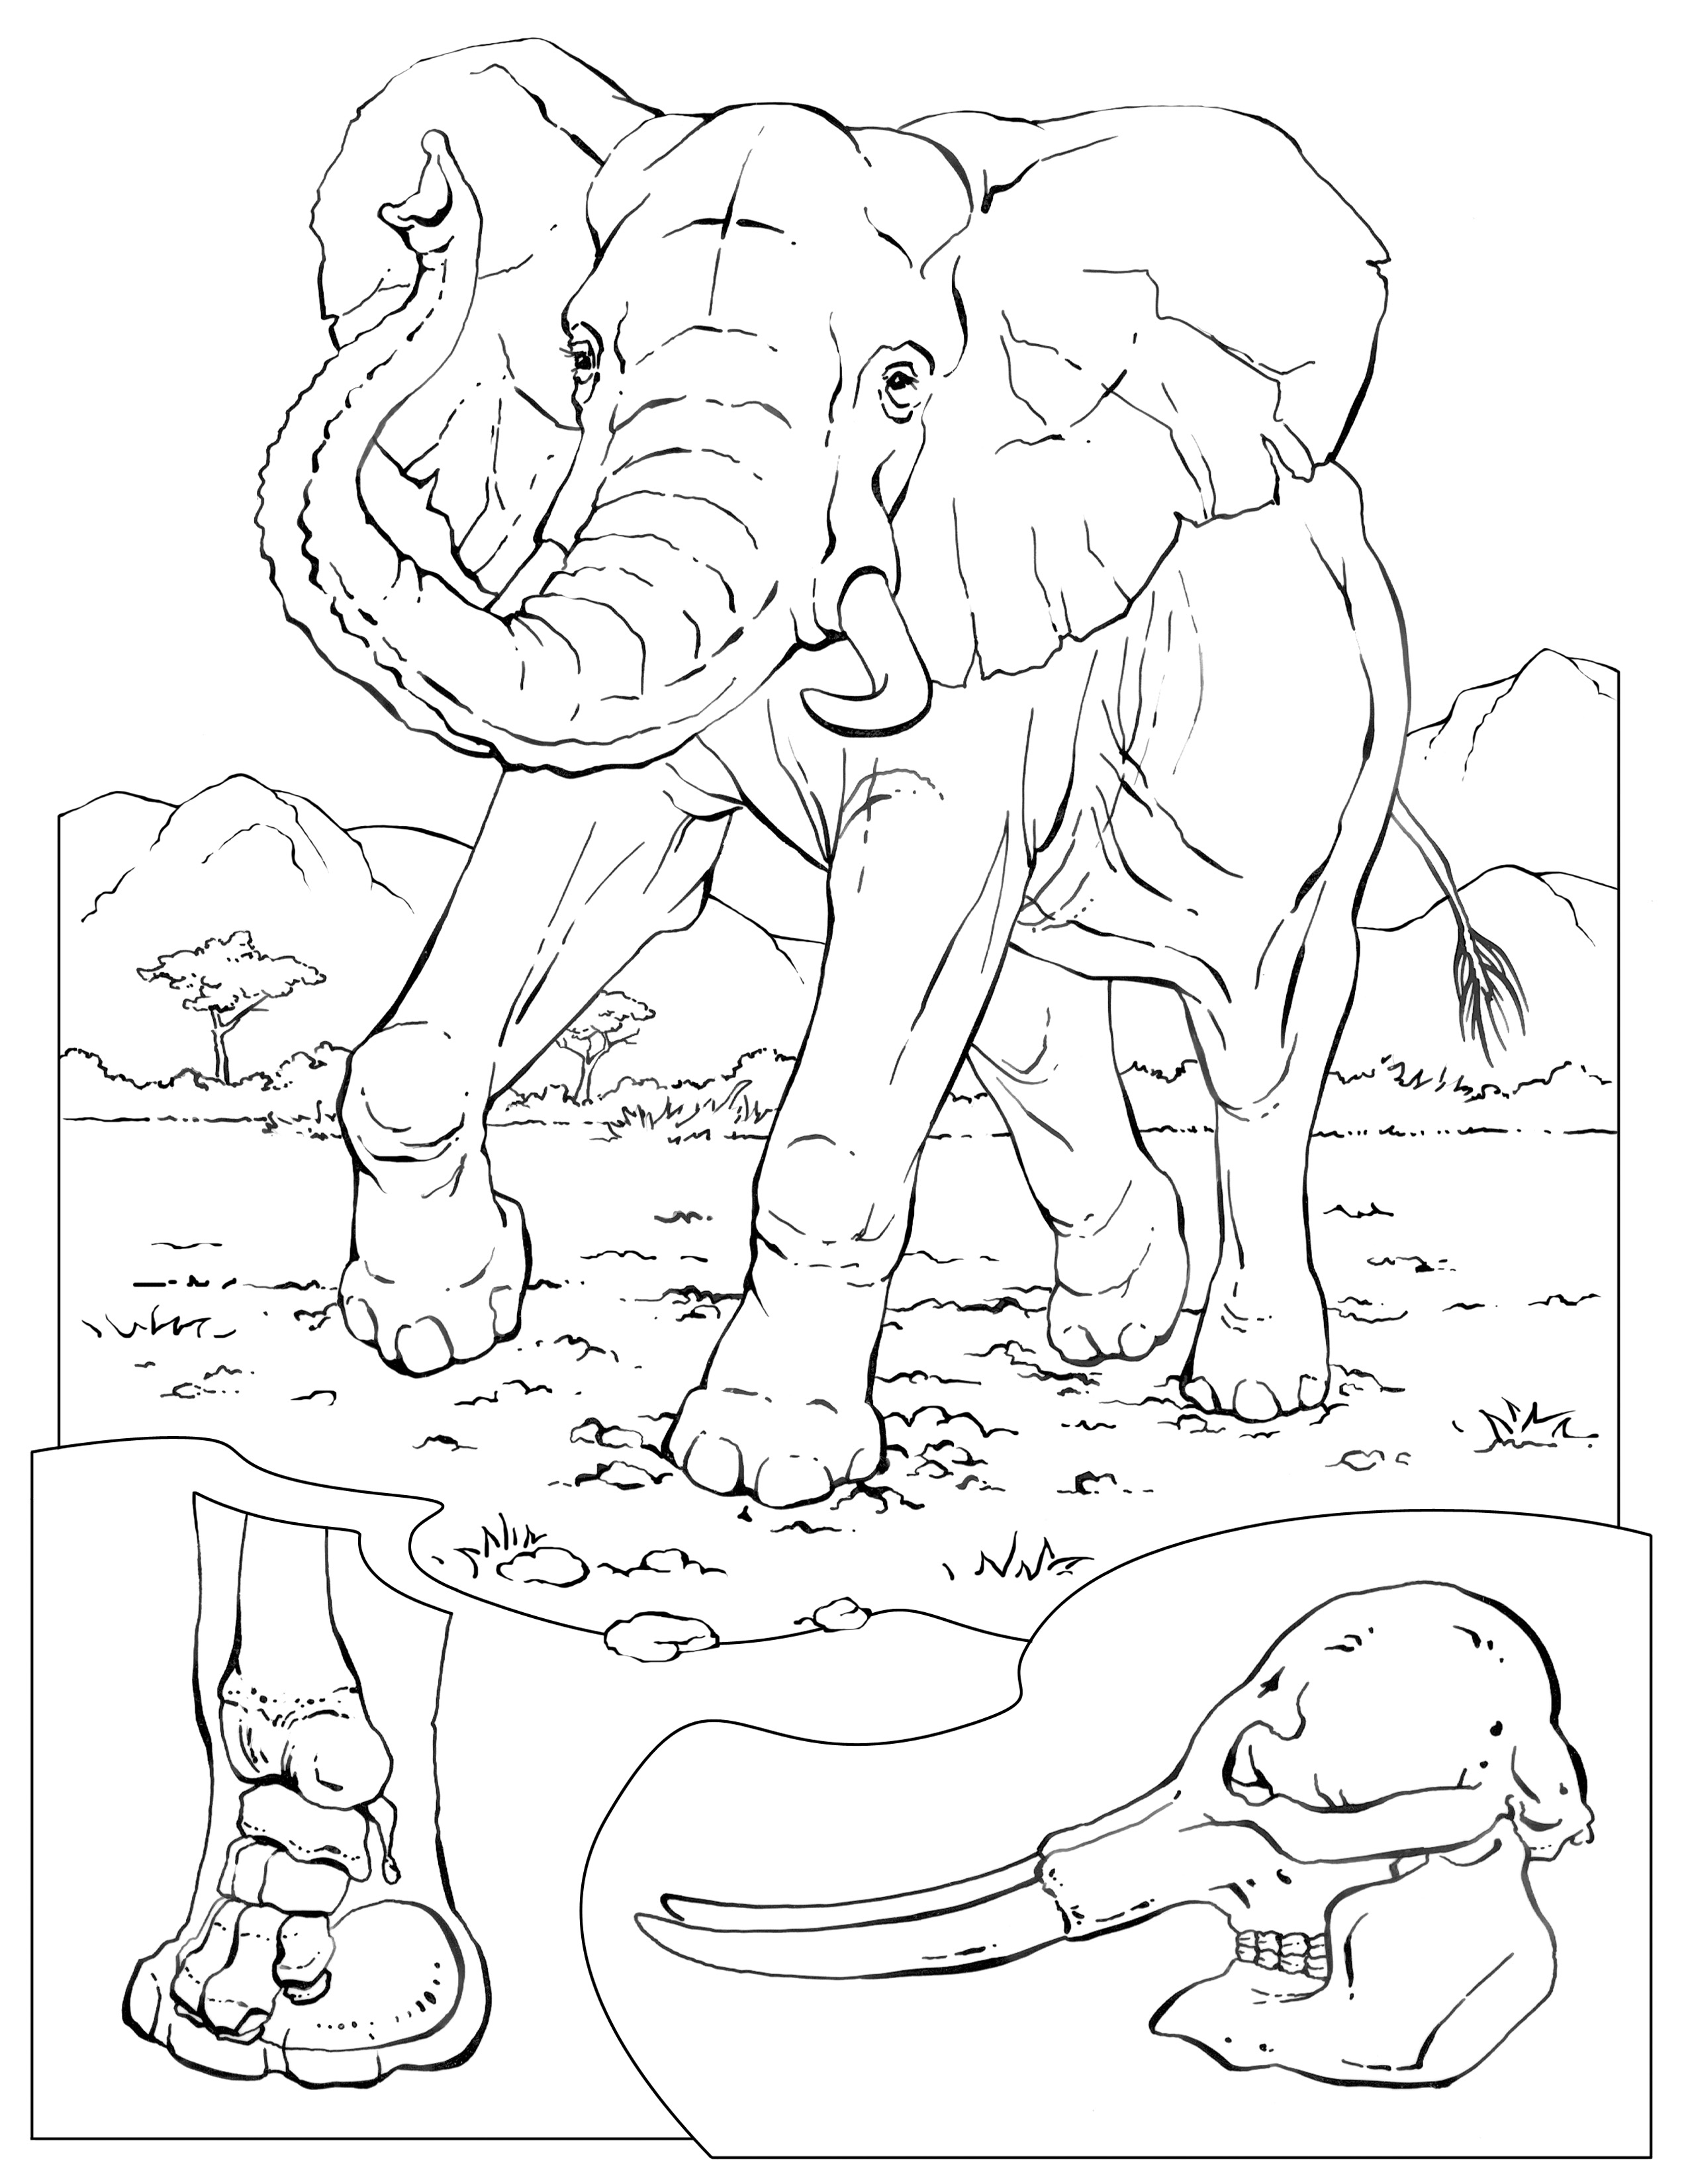 www coloring pages of animals coloring pages wildlife research conservation coloring of www animals pages